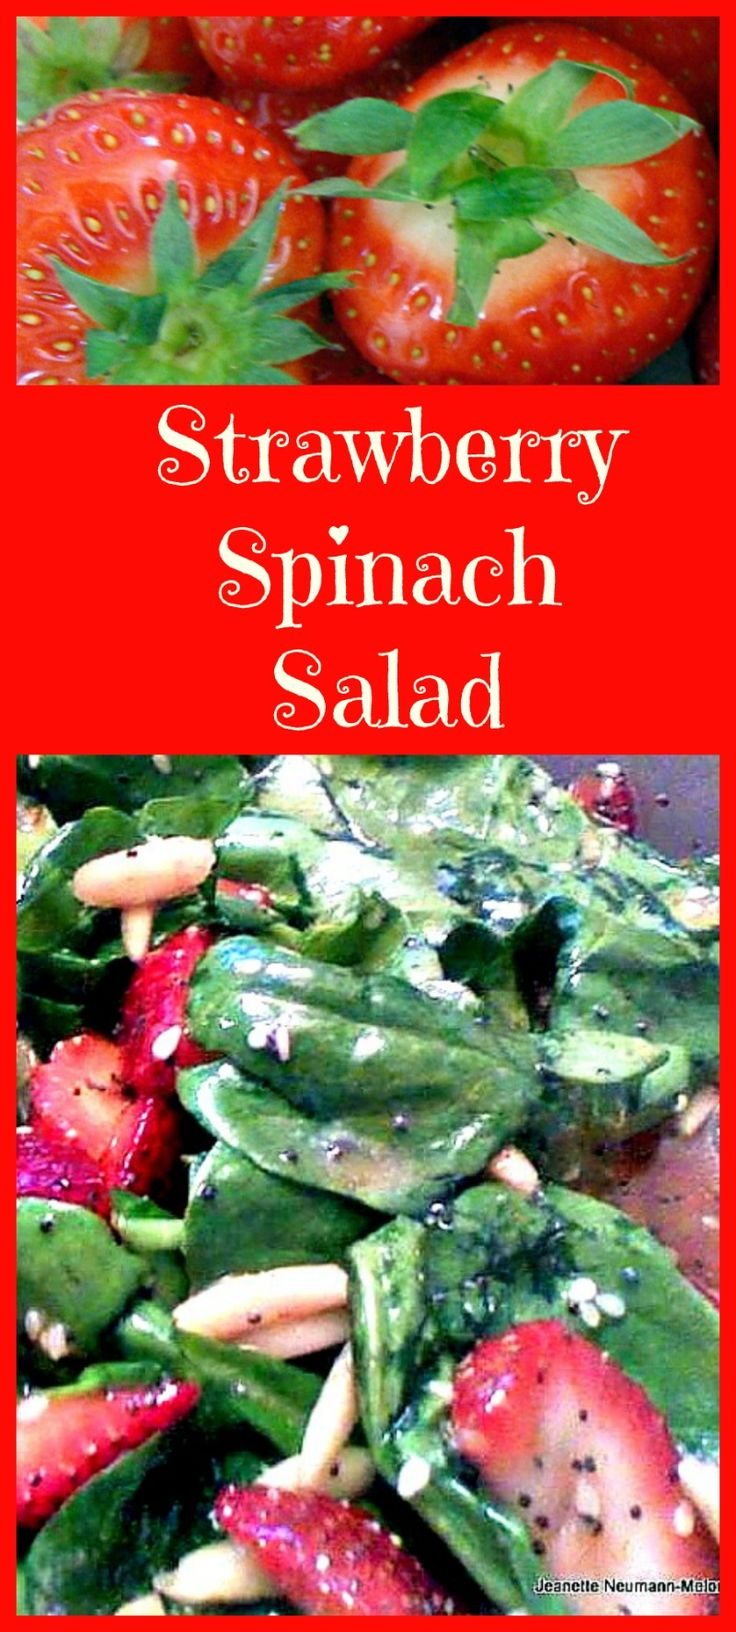 Strawberry & Spinach salad..and that dressing is to die for!